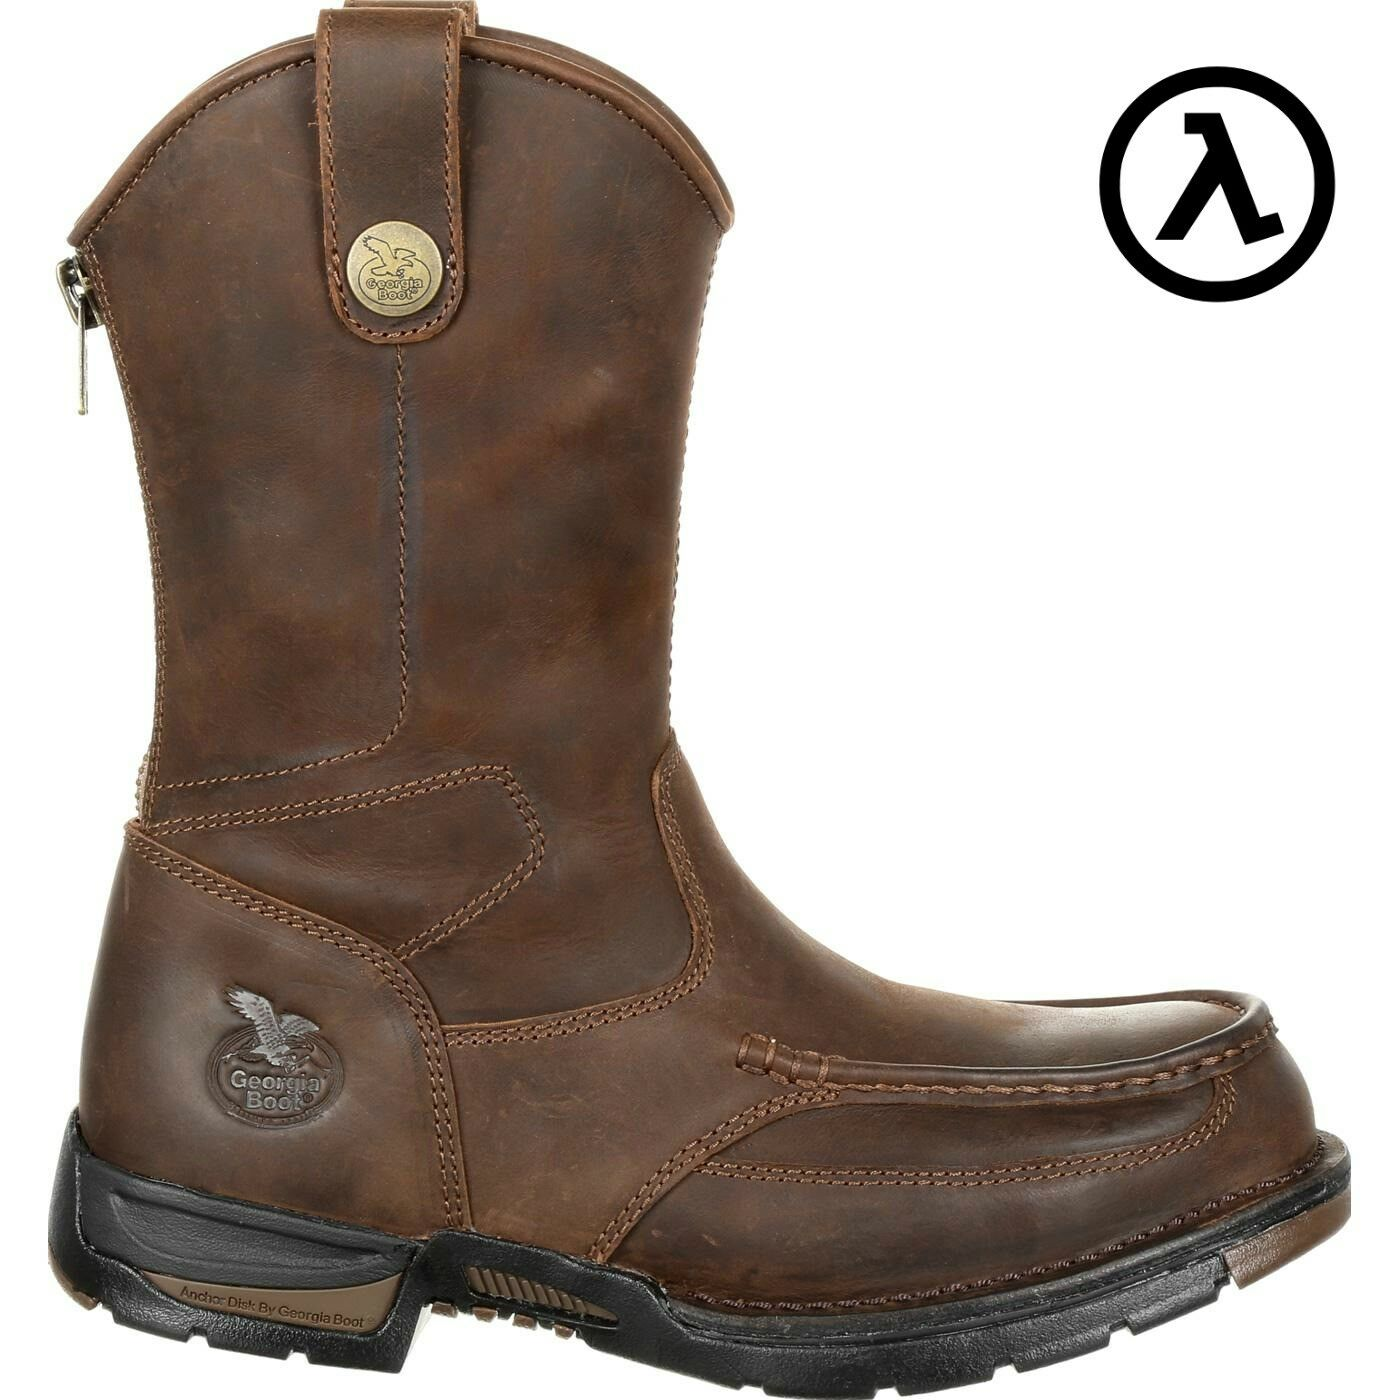 GEORGIA ATHENS PULL-ON STEEL TOE BACK-ZIP WORK BOOTS GB00246 * ALL SIZES - NEW